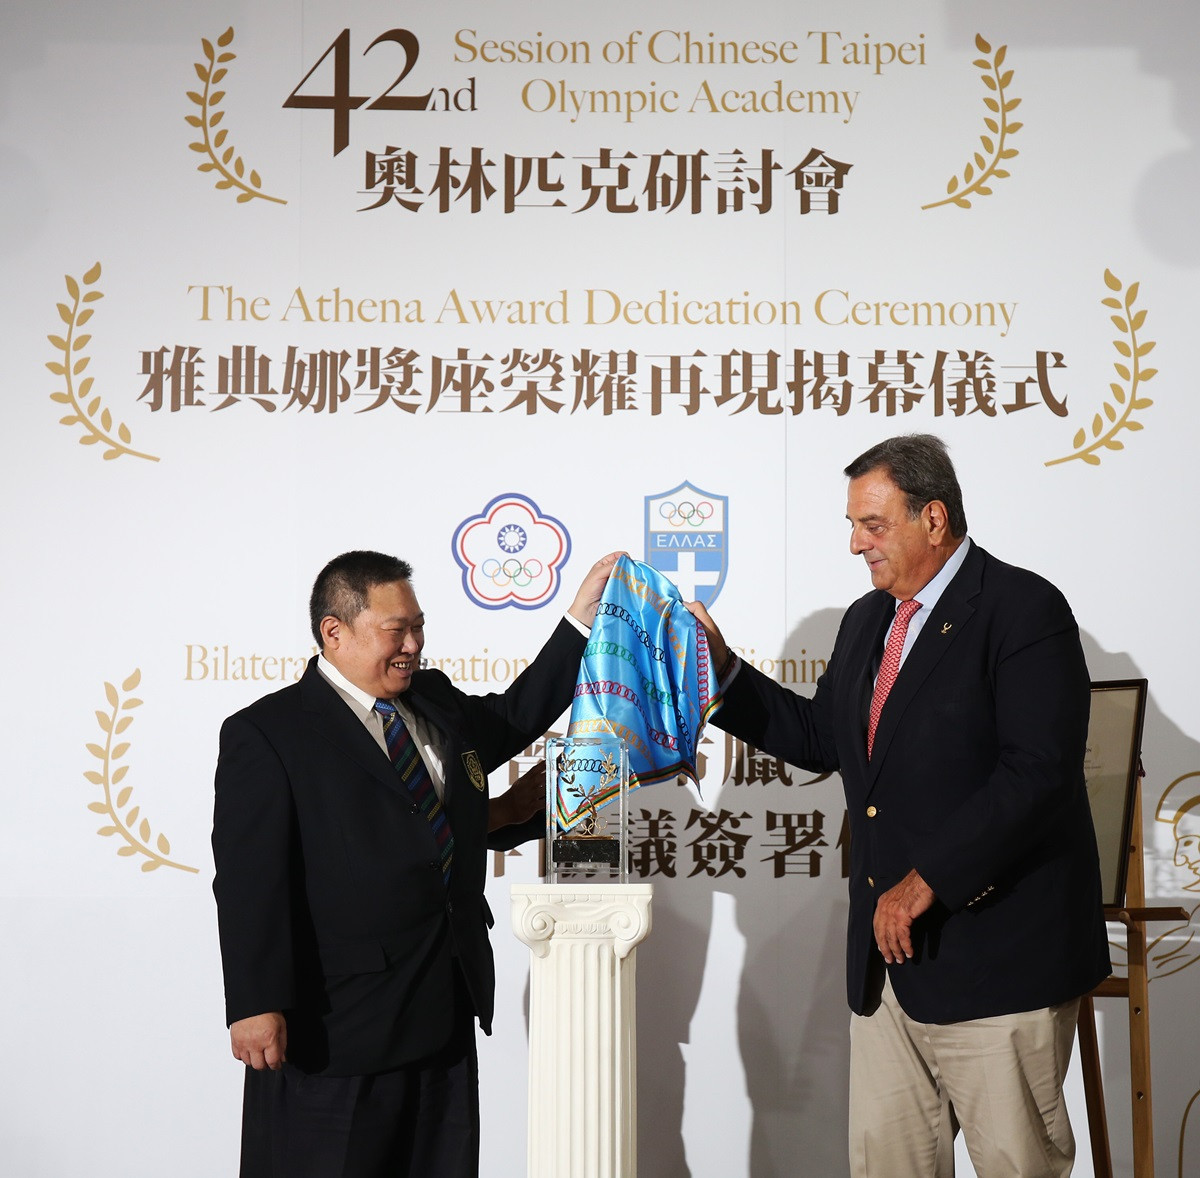 The Chinese Taipei Olympic Committee was awarded the Prize Athena